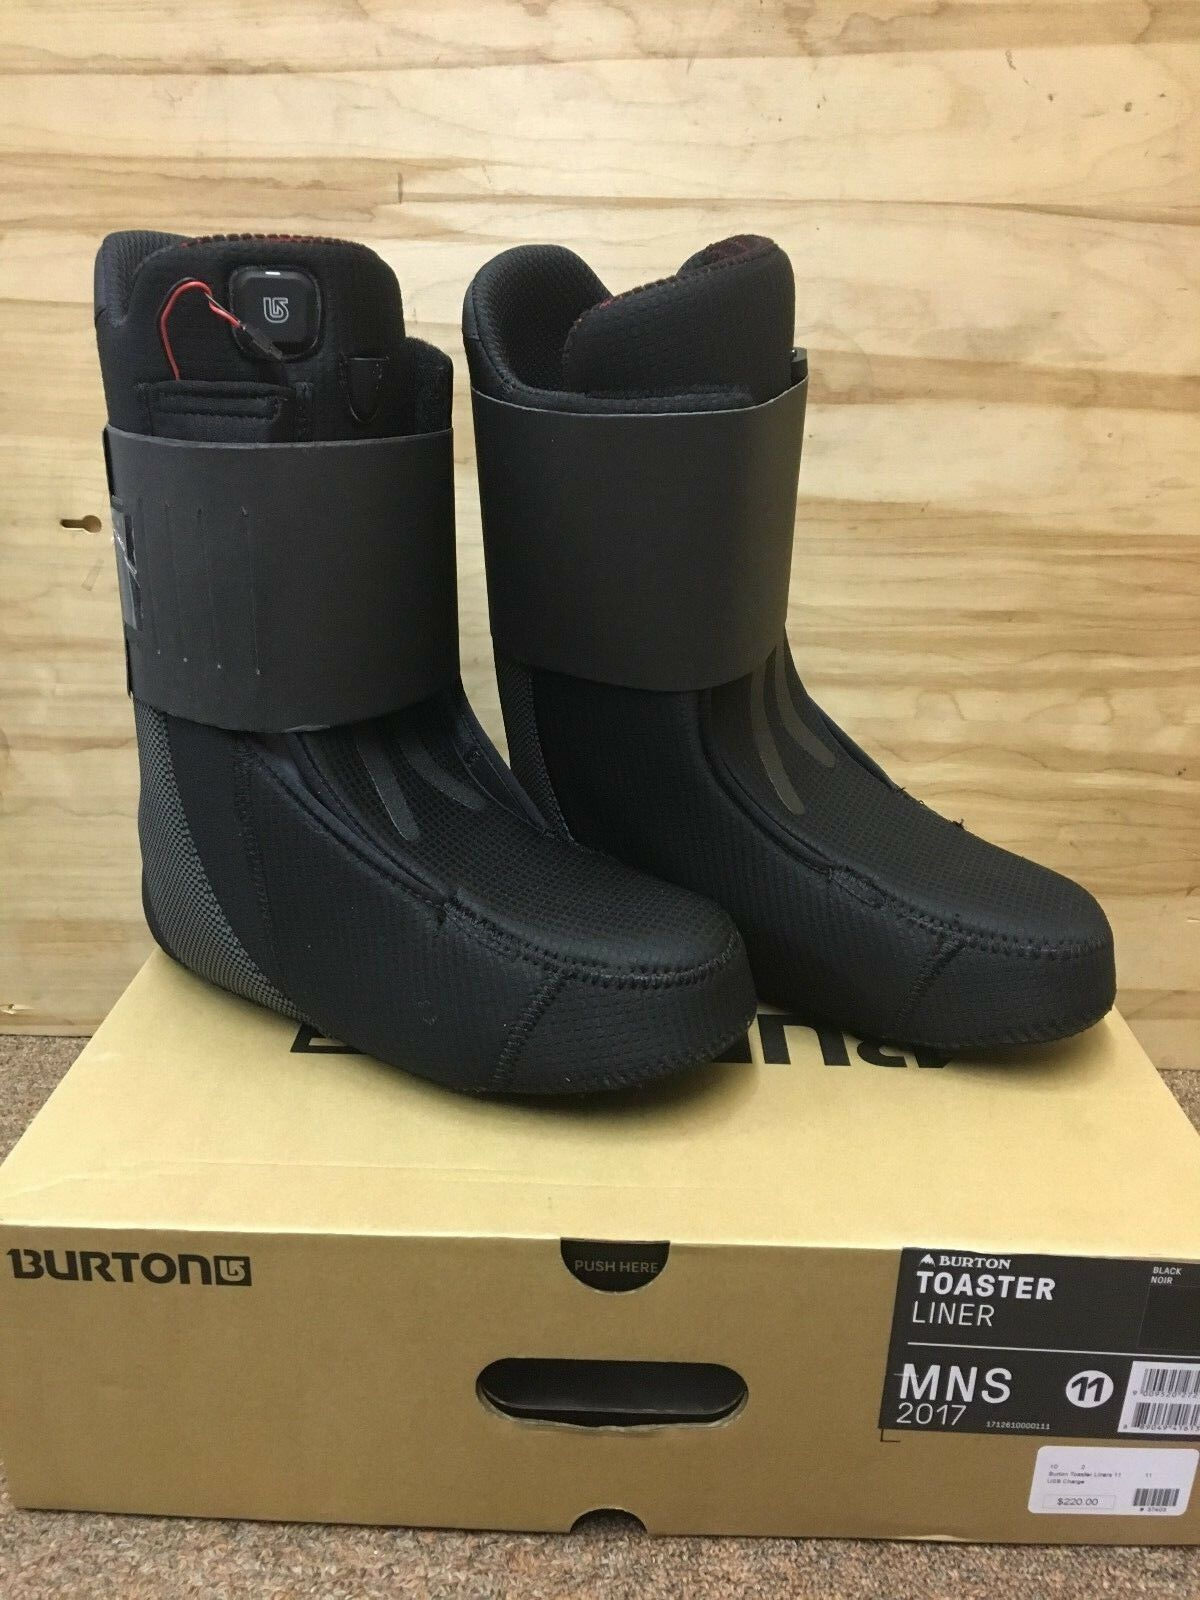 NEW Burton Toaster  Liners - Men's Size 11 Mmm... toasty   save up to 70% discount